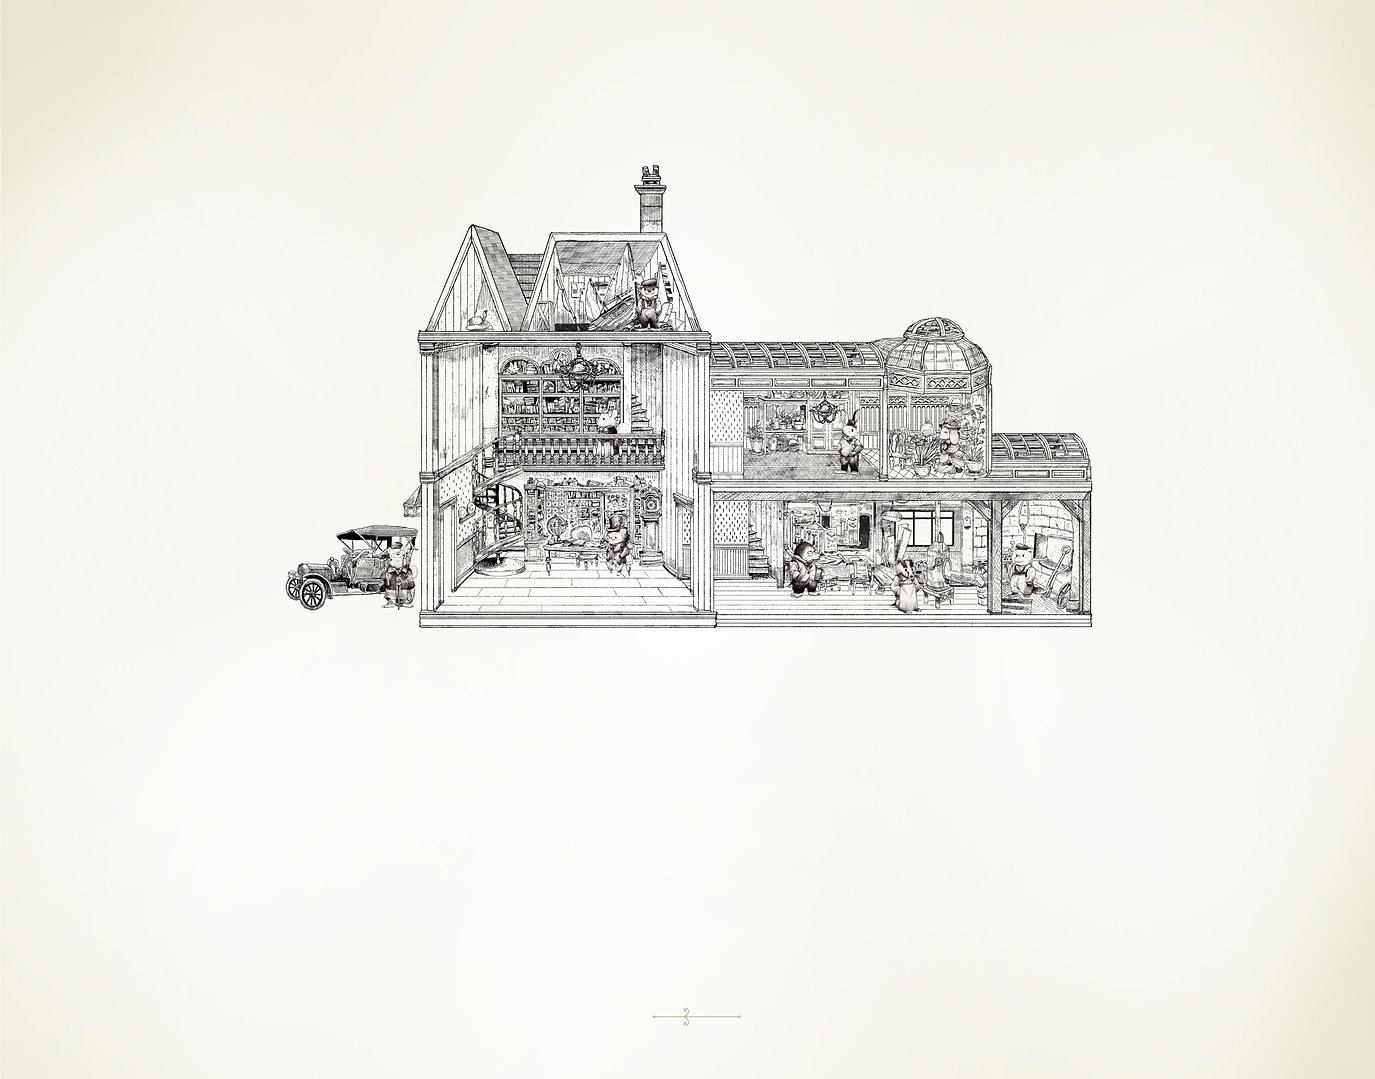 The-Story-Page-2-bigger-house-with-chara